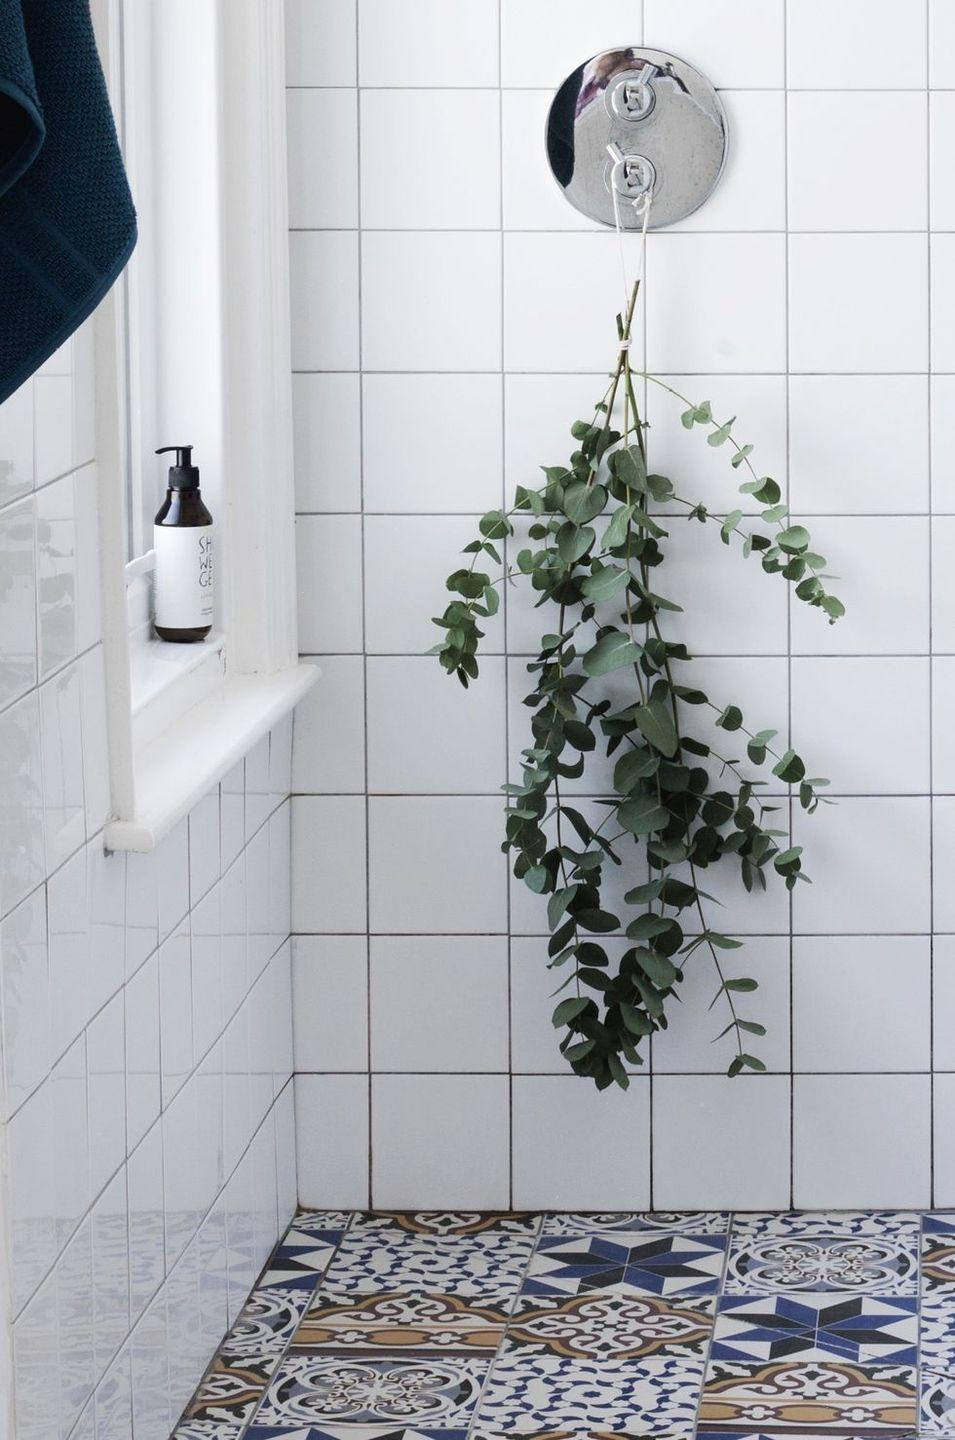 <p>If you're committed to making self-care a priority this year, start off on the right foot by hanging bunches of eucalyptus in your shower.</p>